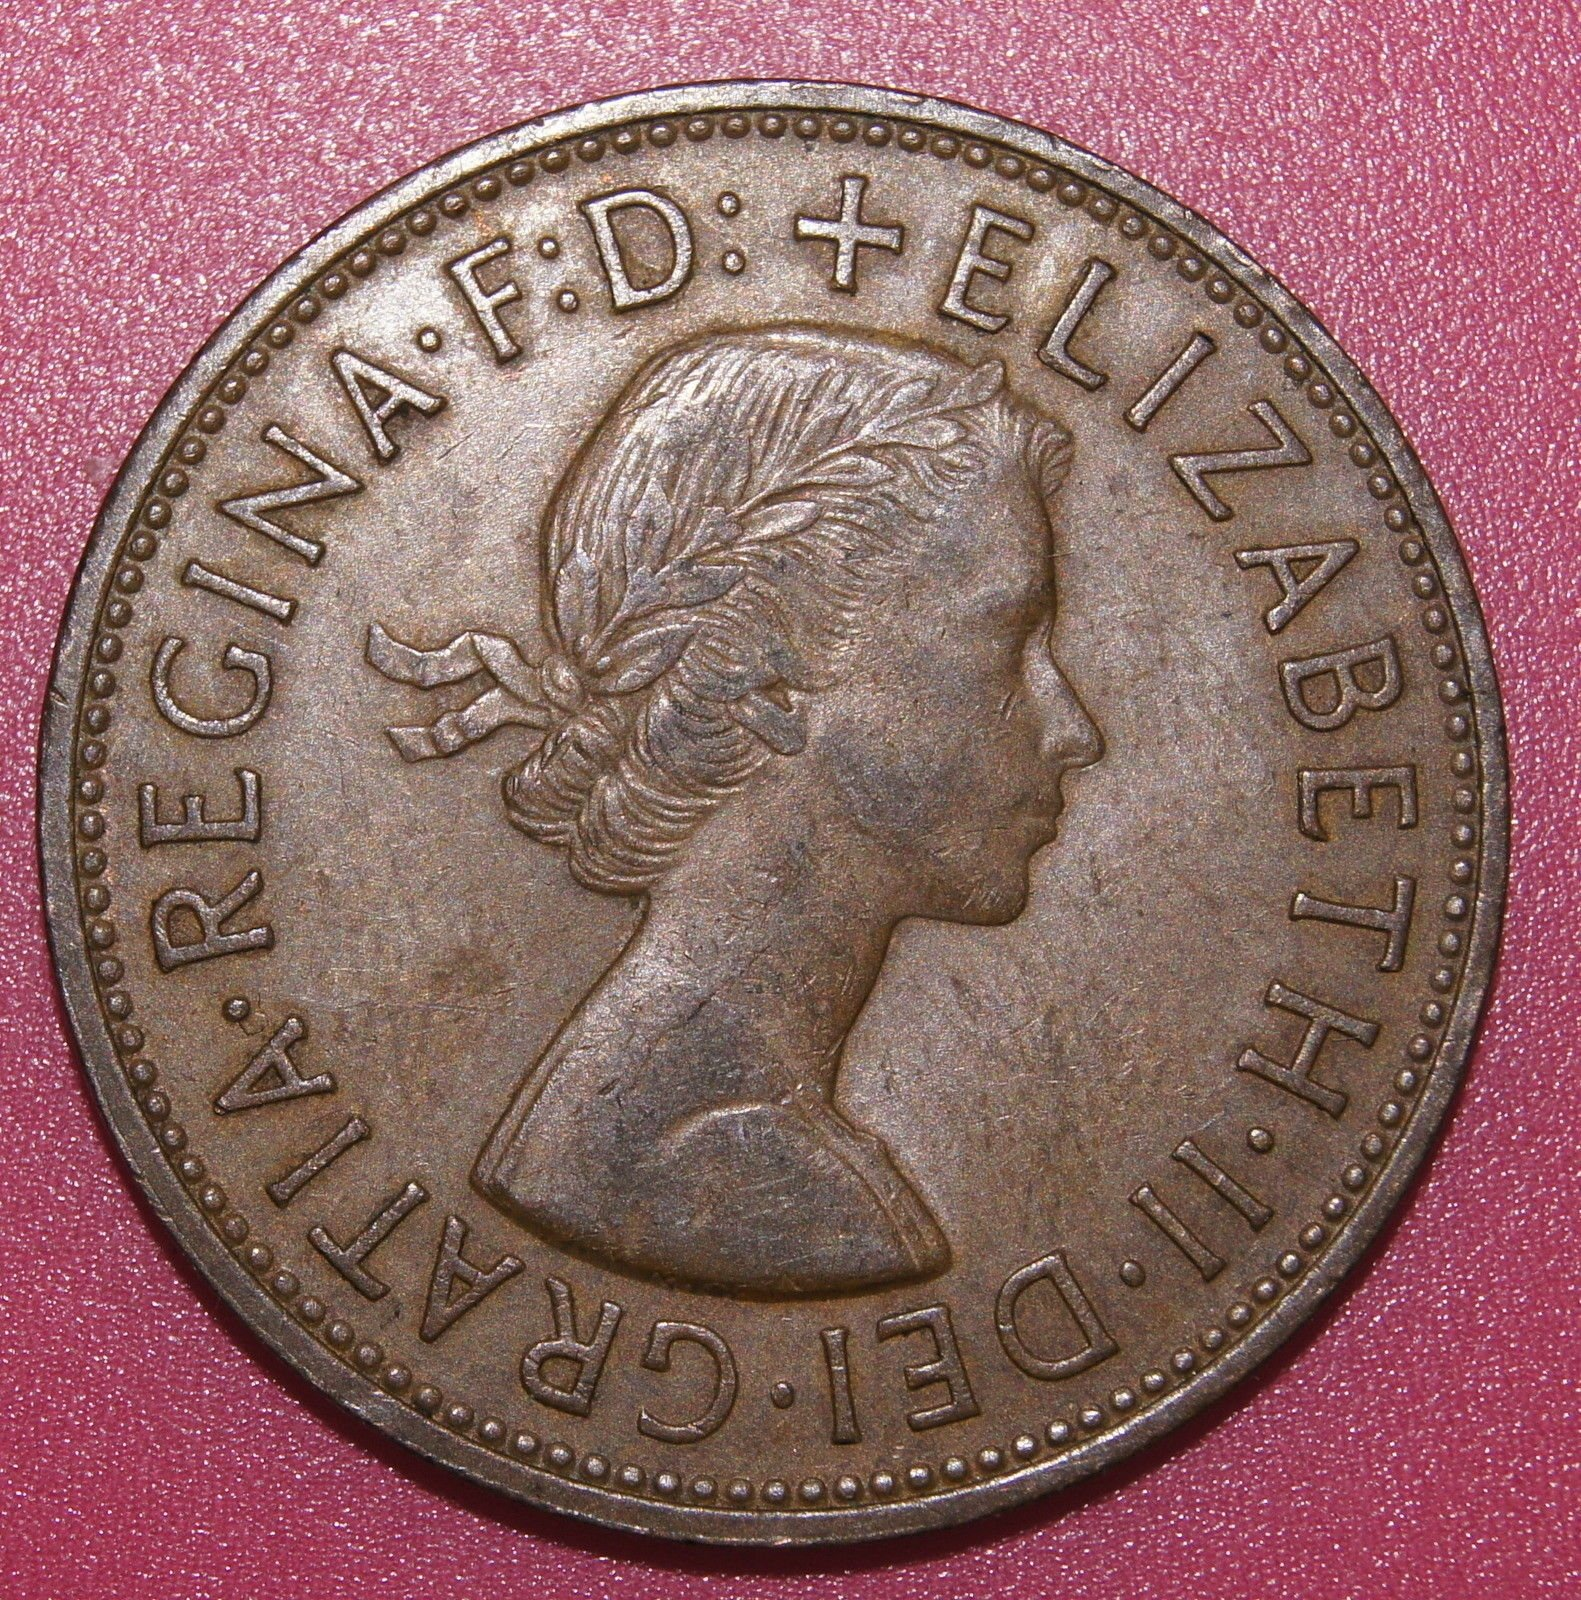 I'm Looking To Find Some Info On A Coin I Found In The